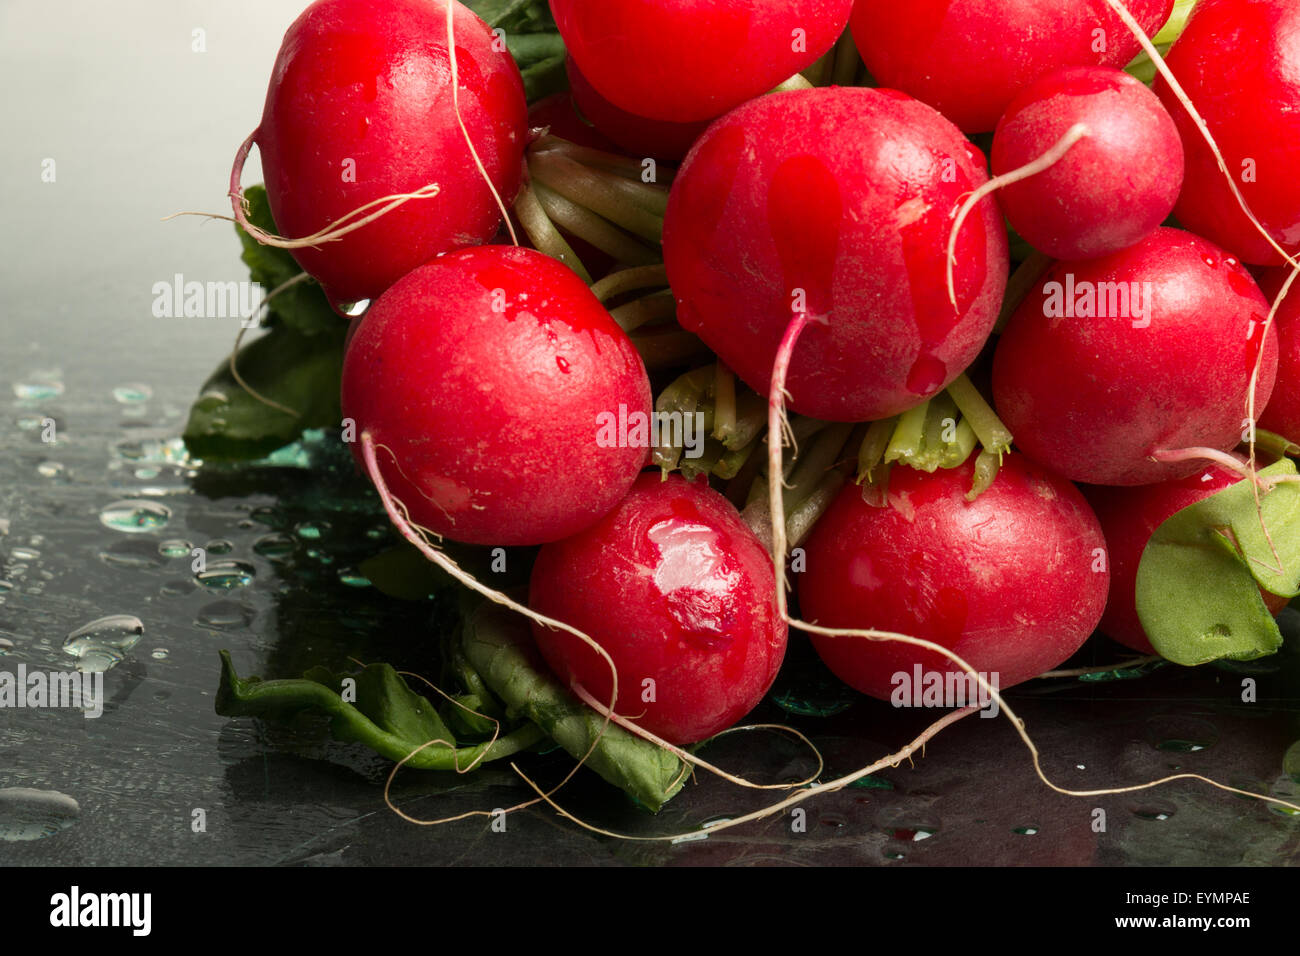 Bundle of red radishes on display, studio-shot, close-up - Stock Image